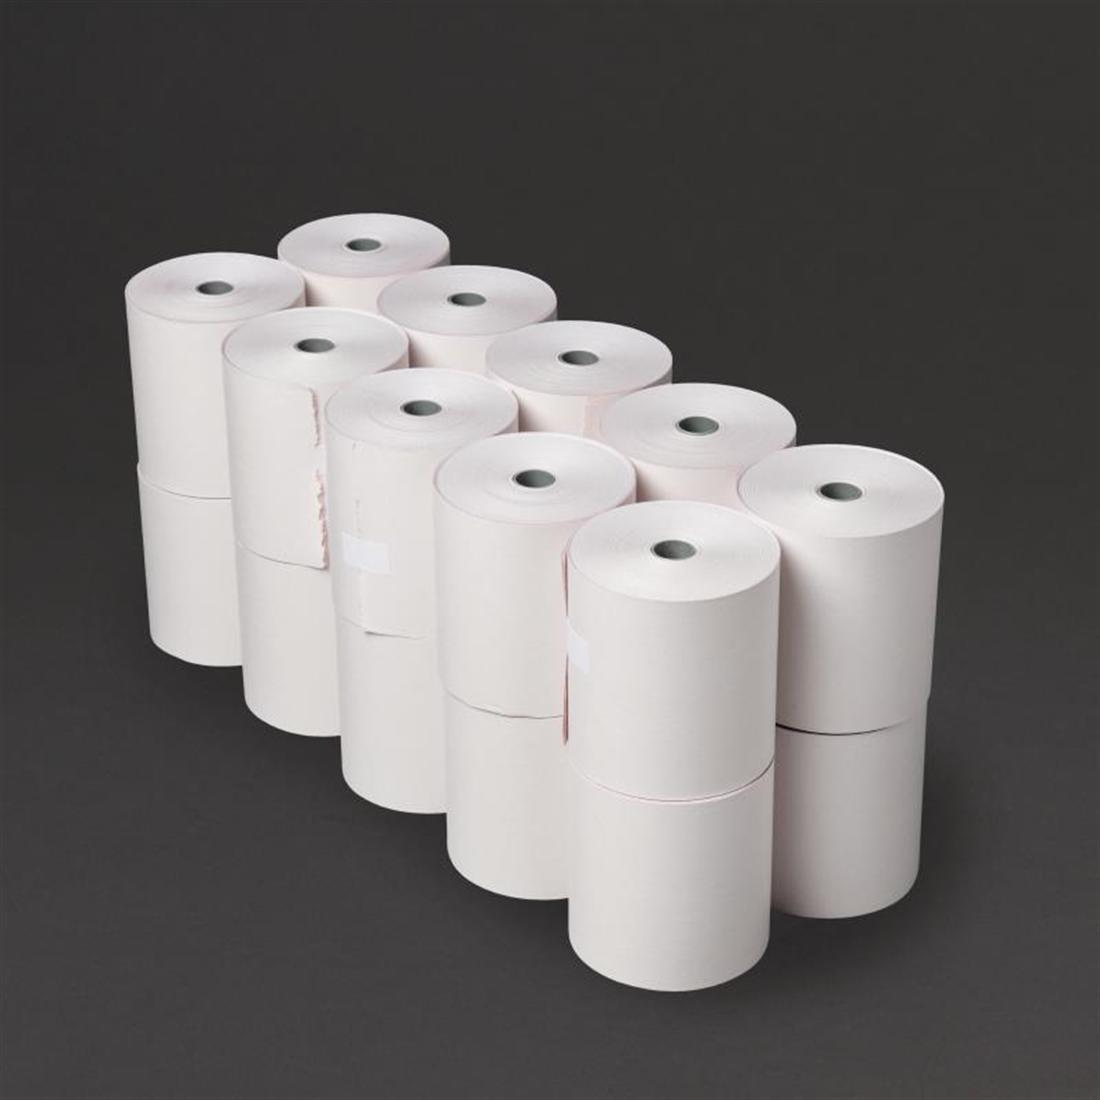 Fiesta Non-thermal 2ply White and Pink Till Roll 76mm x 70mm